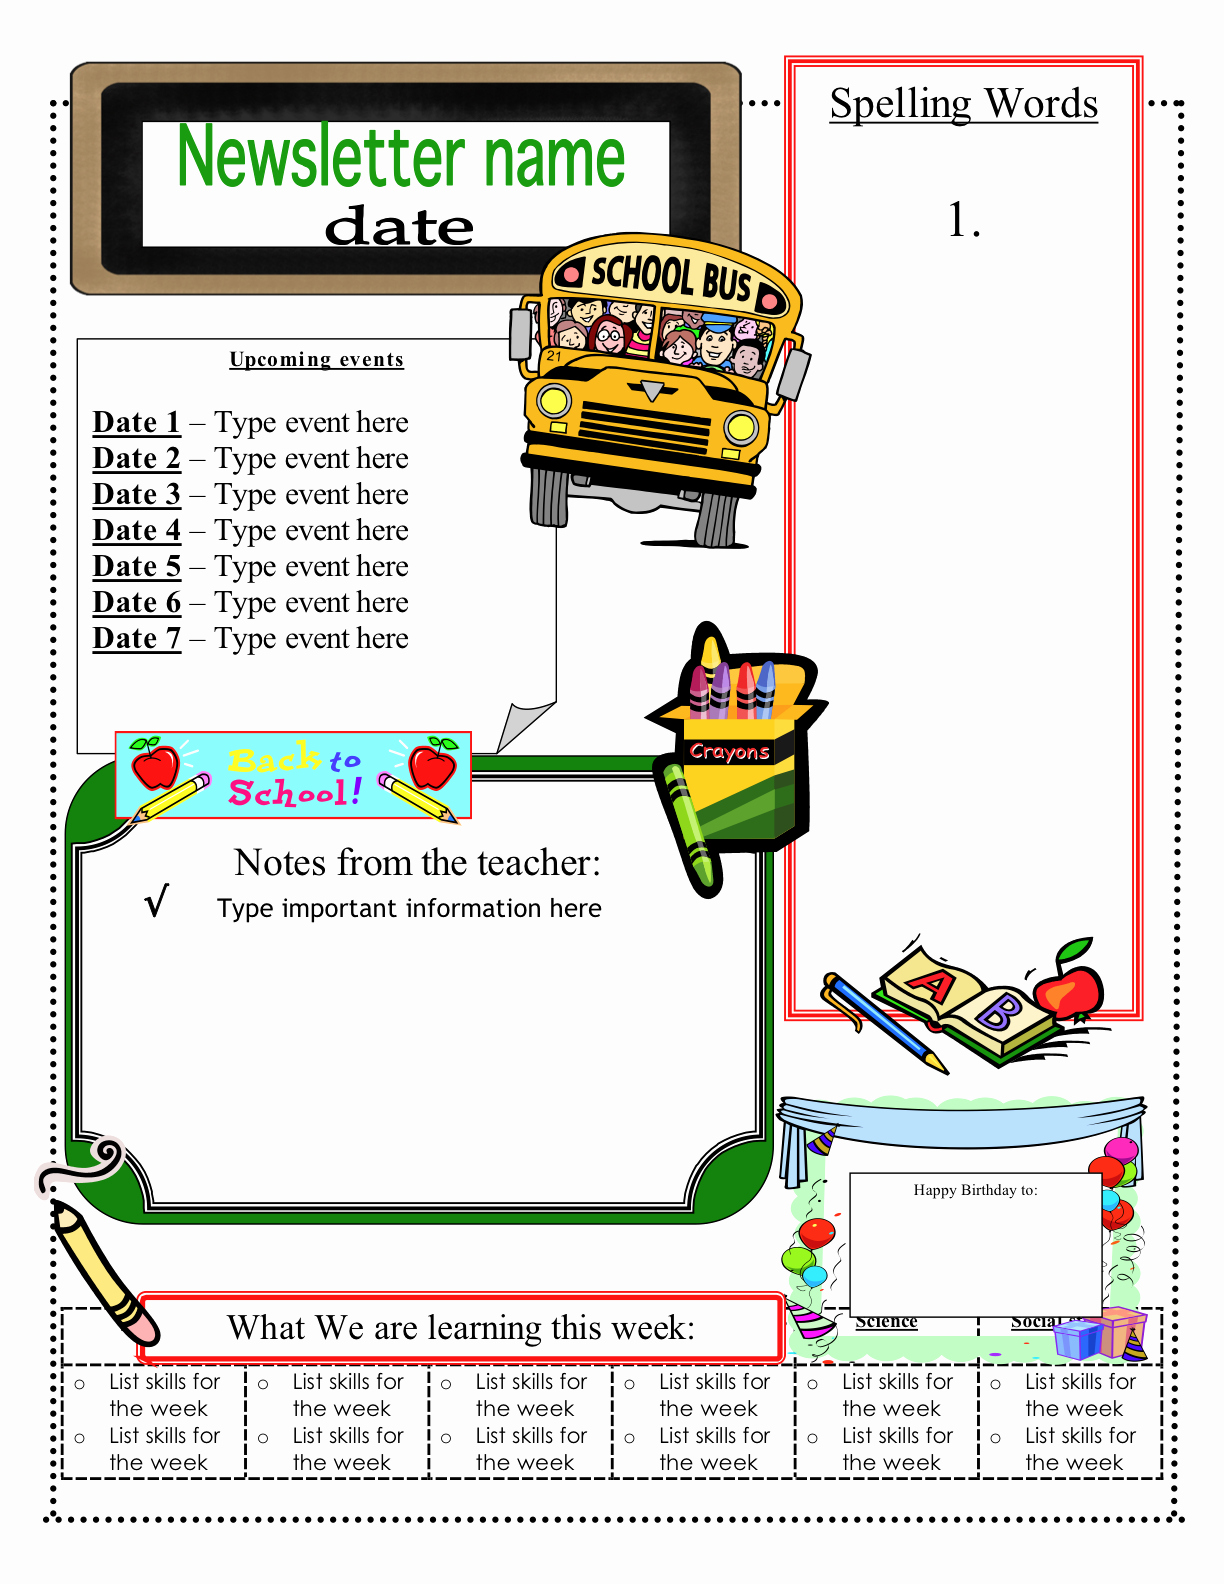 Free Printable Newsletter Templates Awesome Free Classroom Newsletter Templates Check Out these Eight